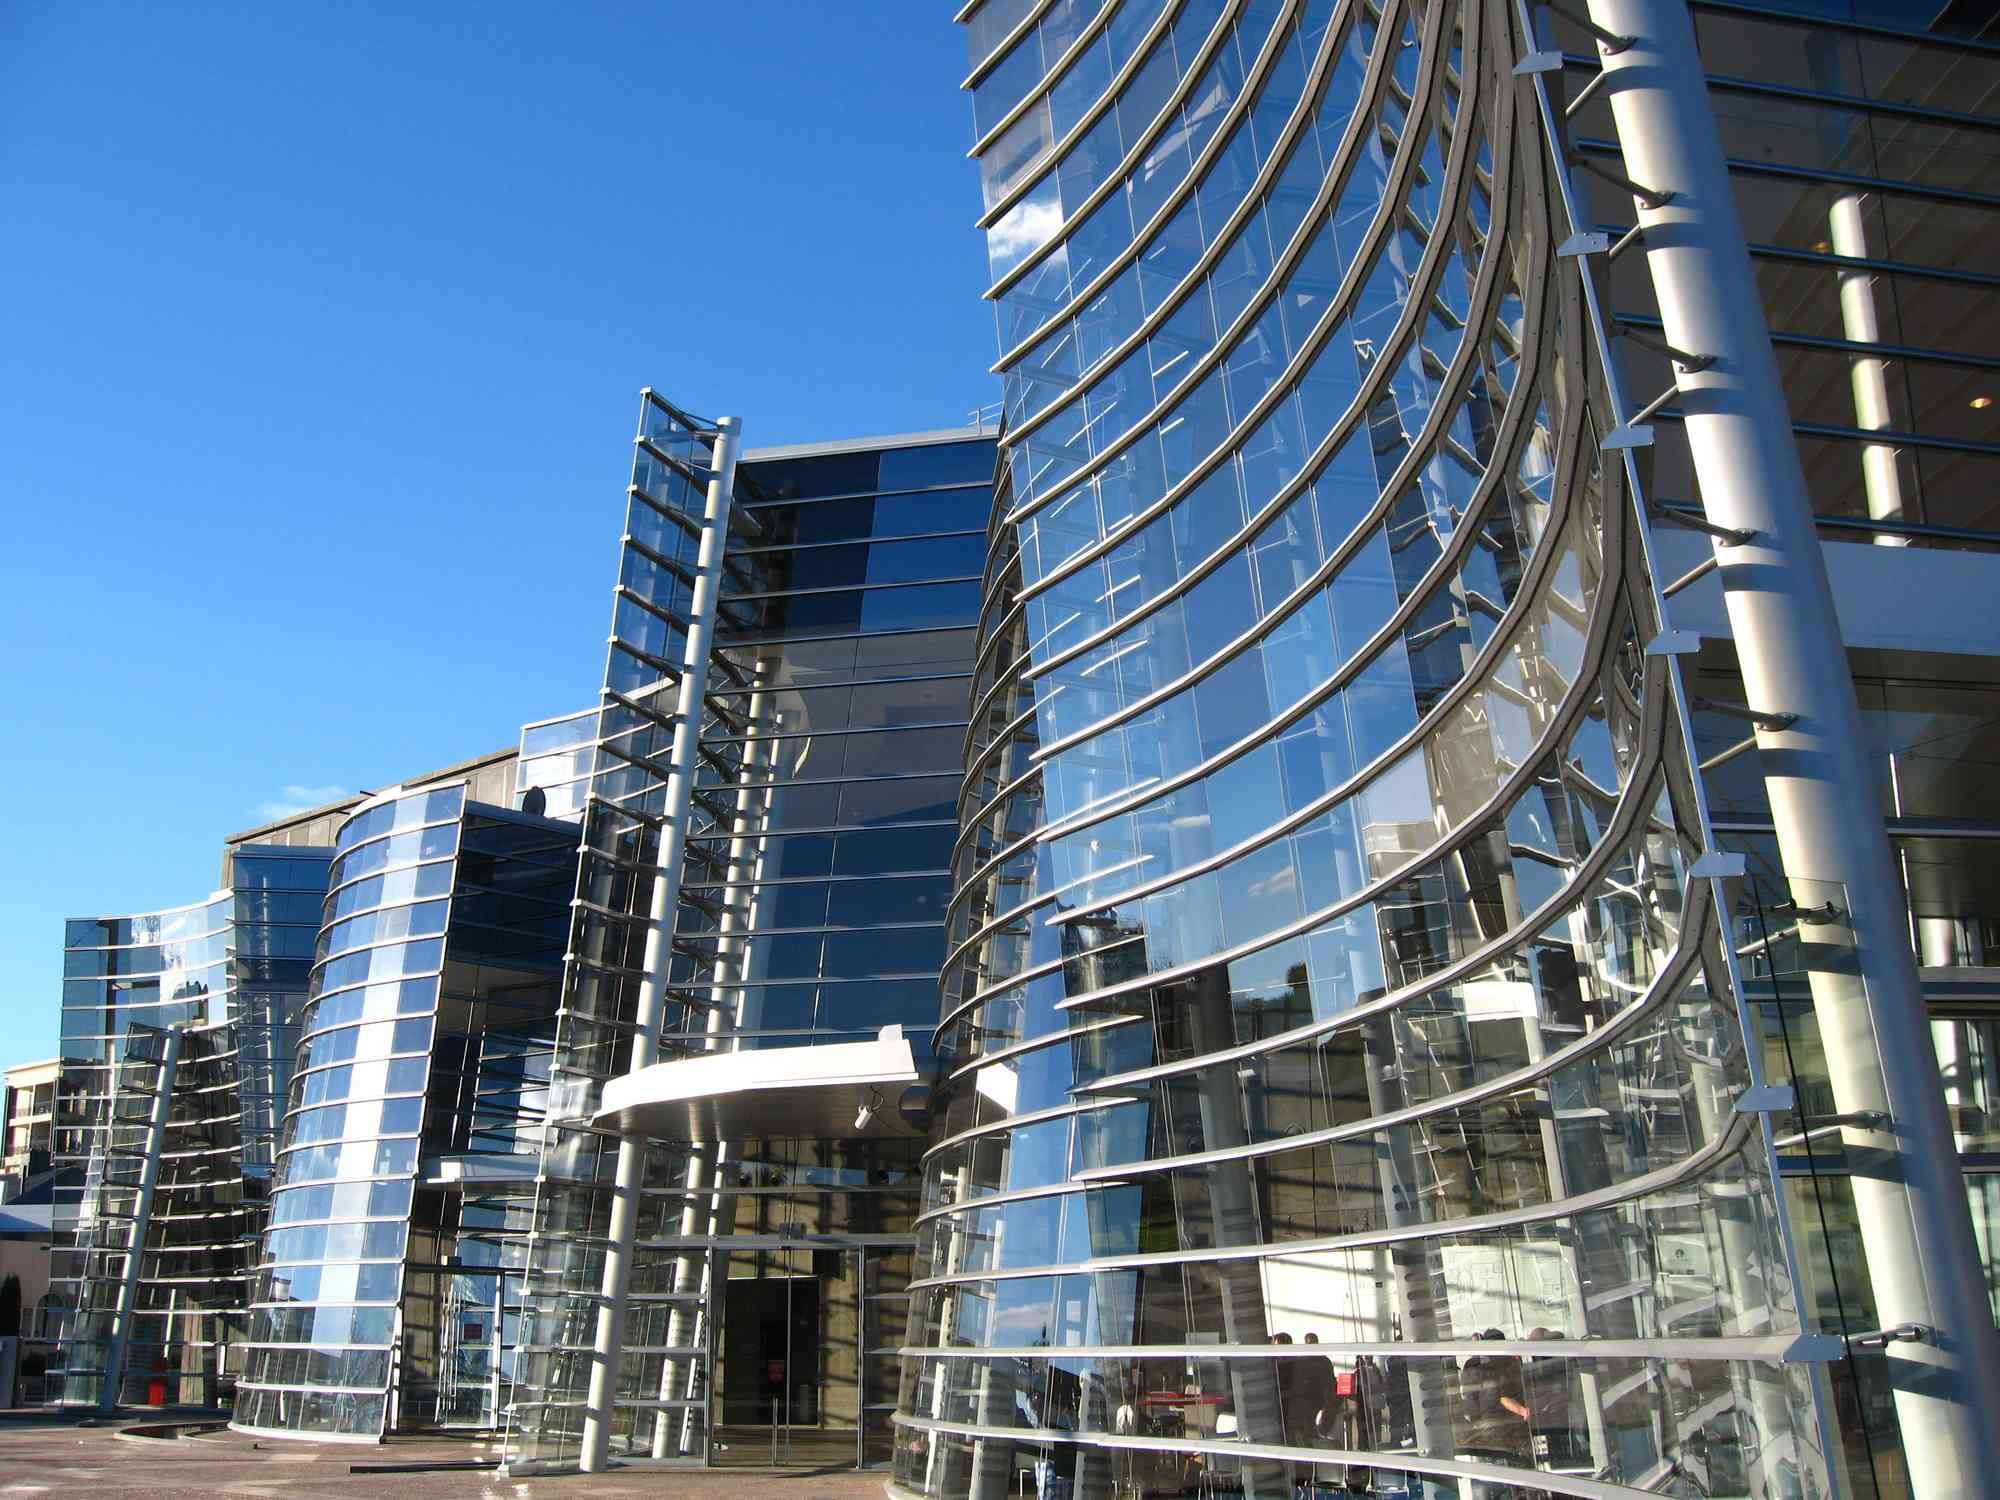 curved glass building with blue sky